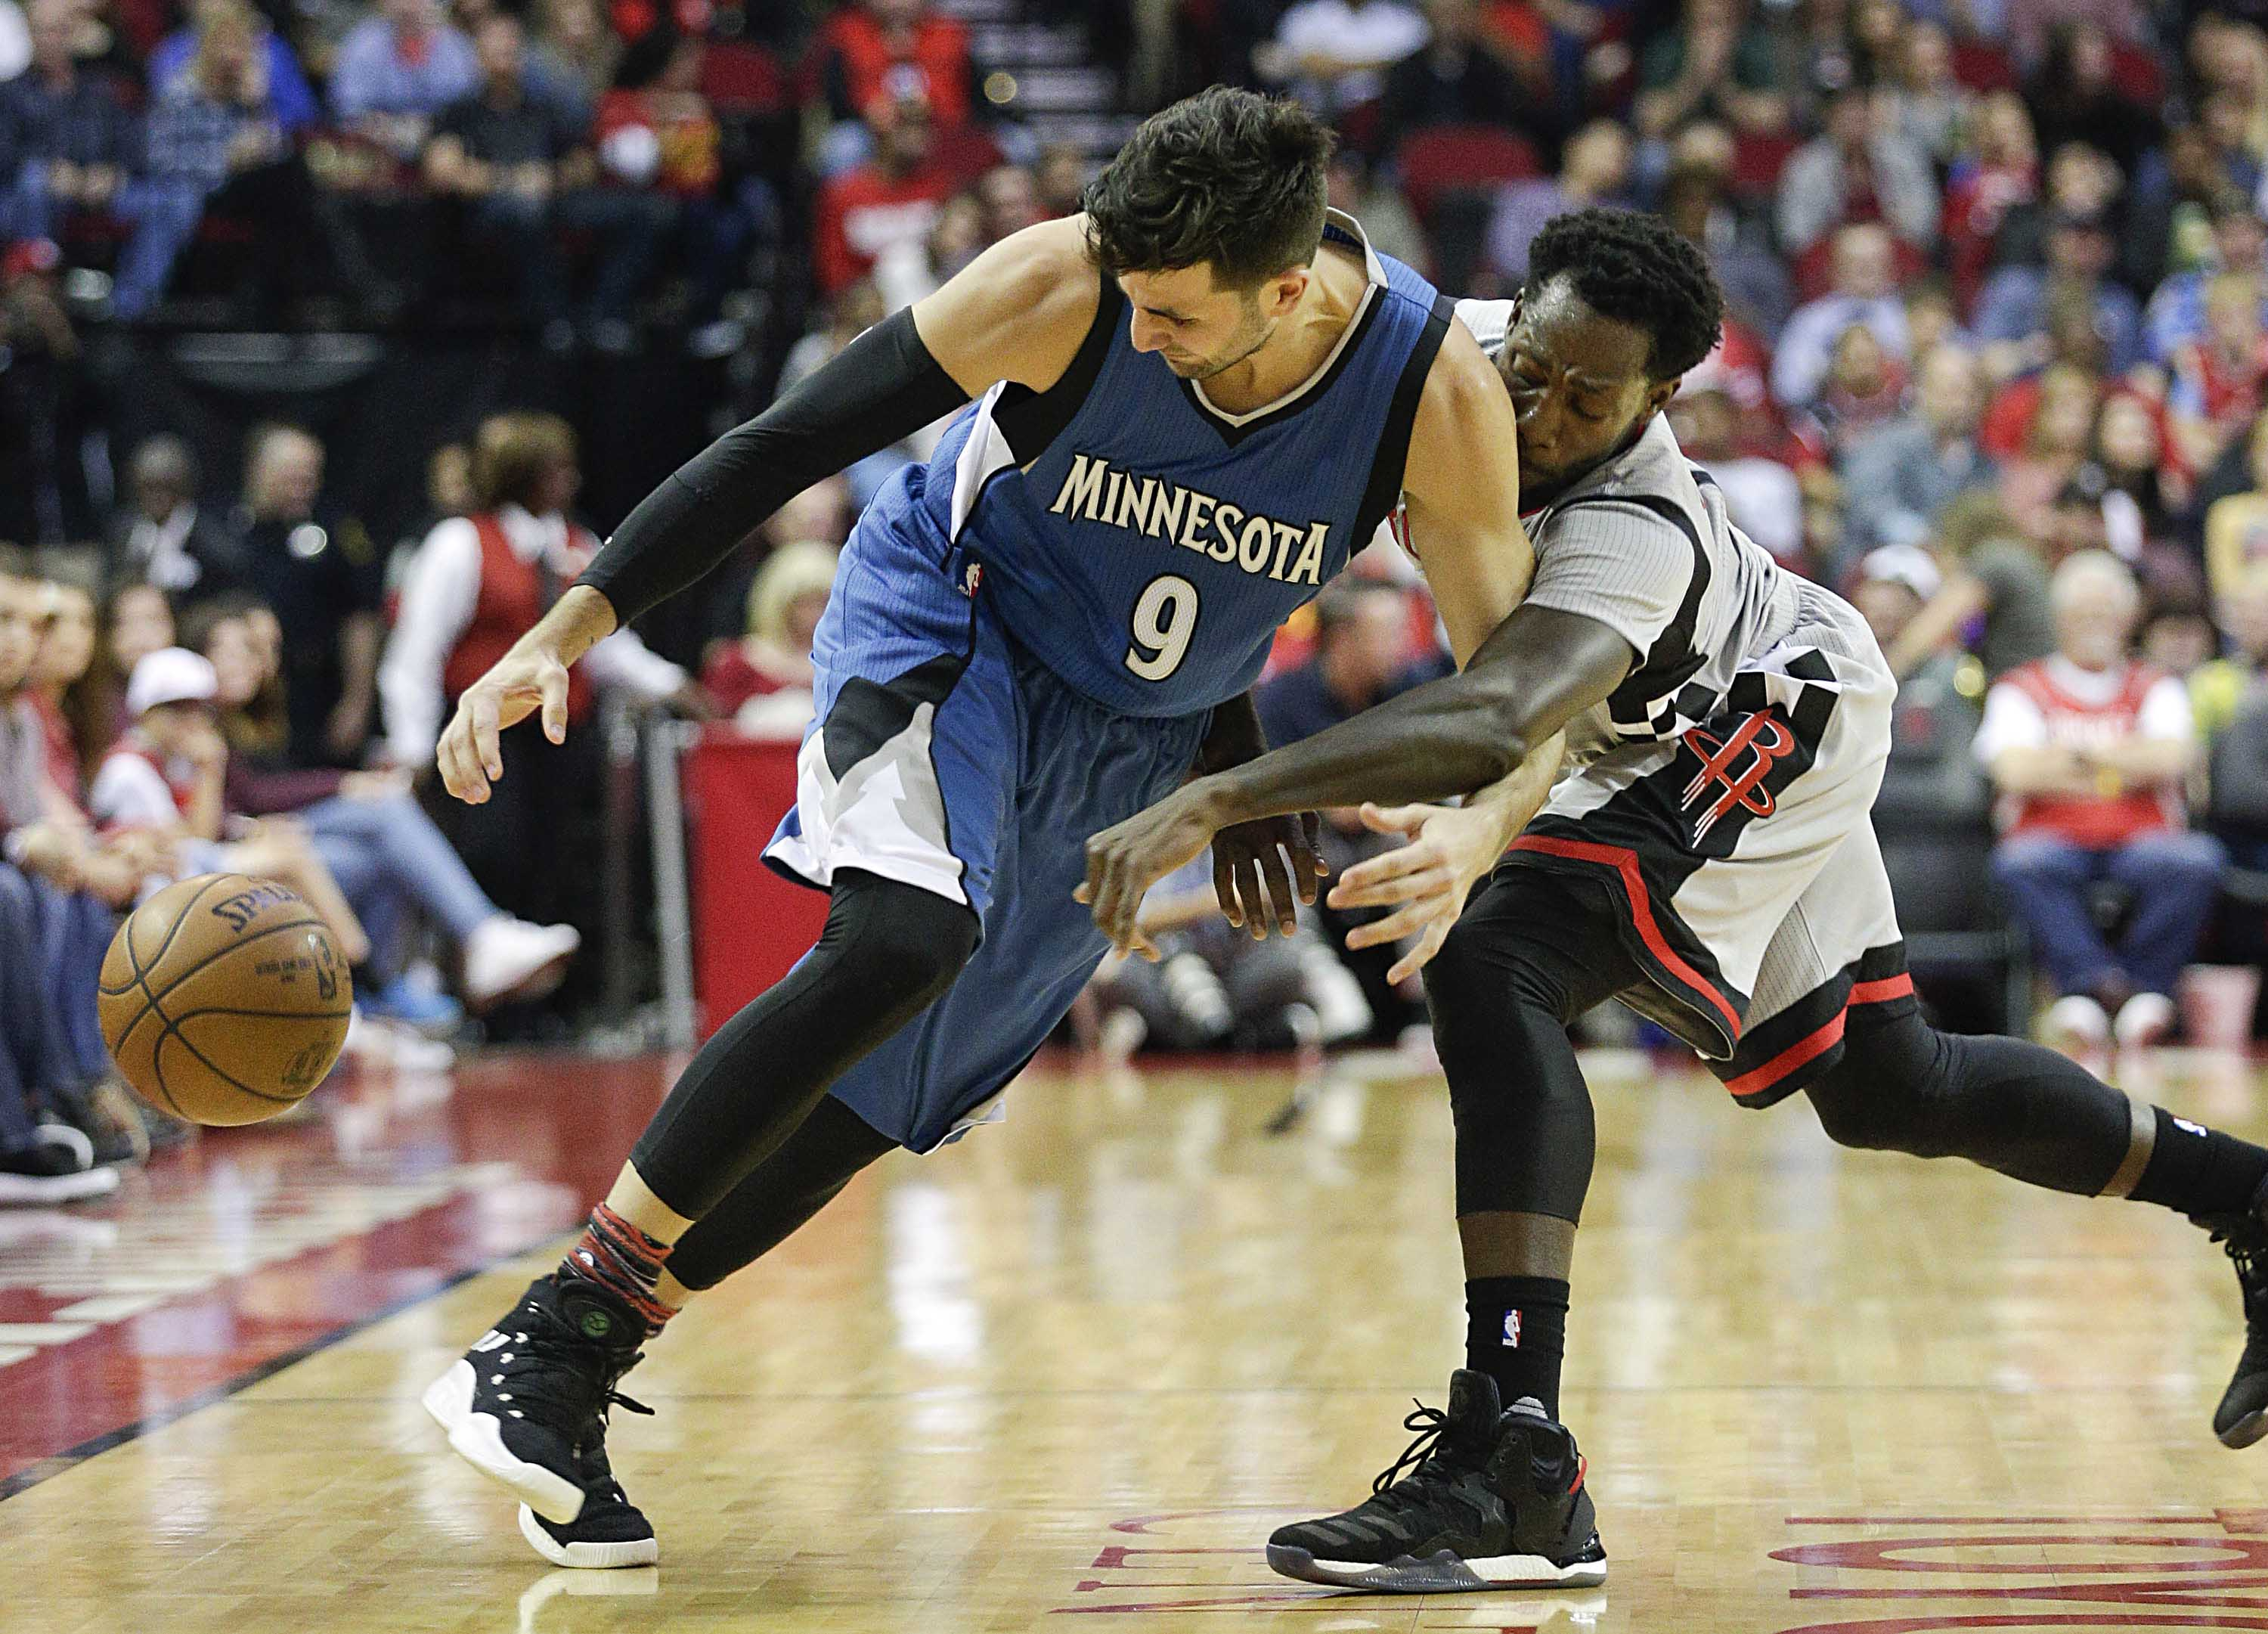 9901229-nba-minnesota-timberwolves-at-houston-rockets